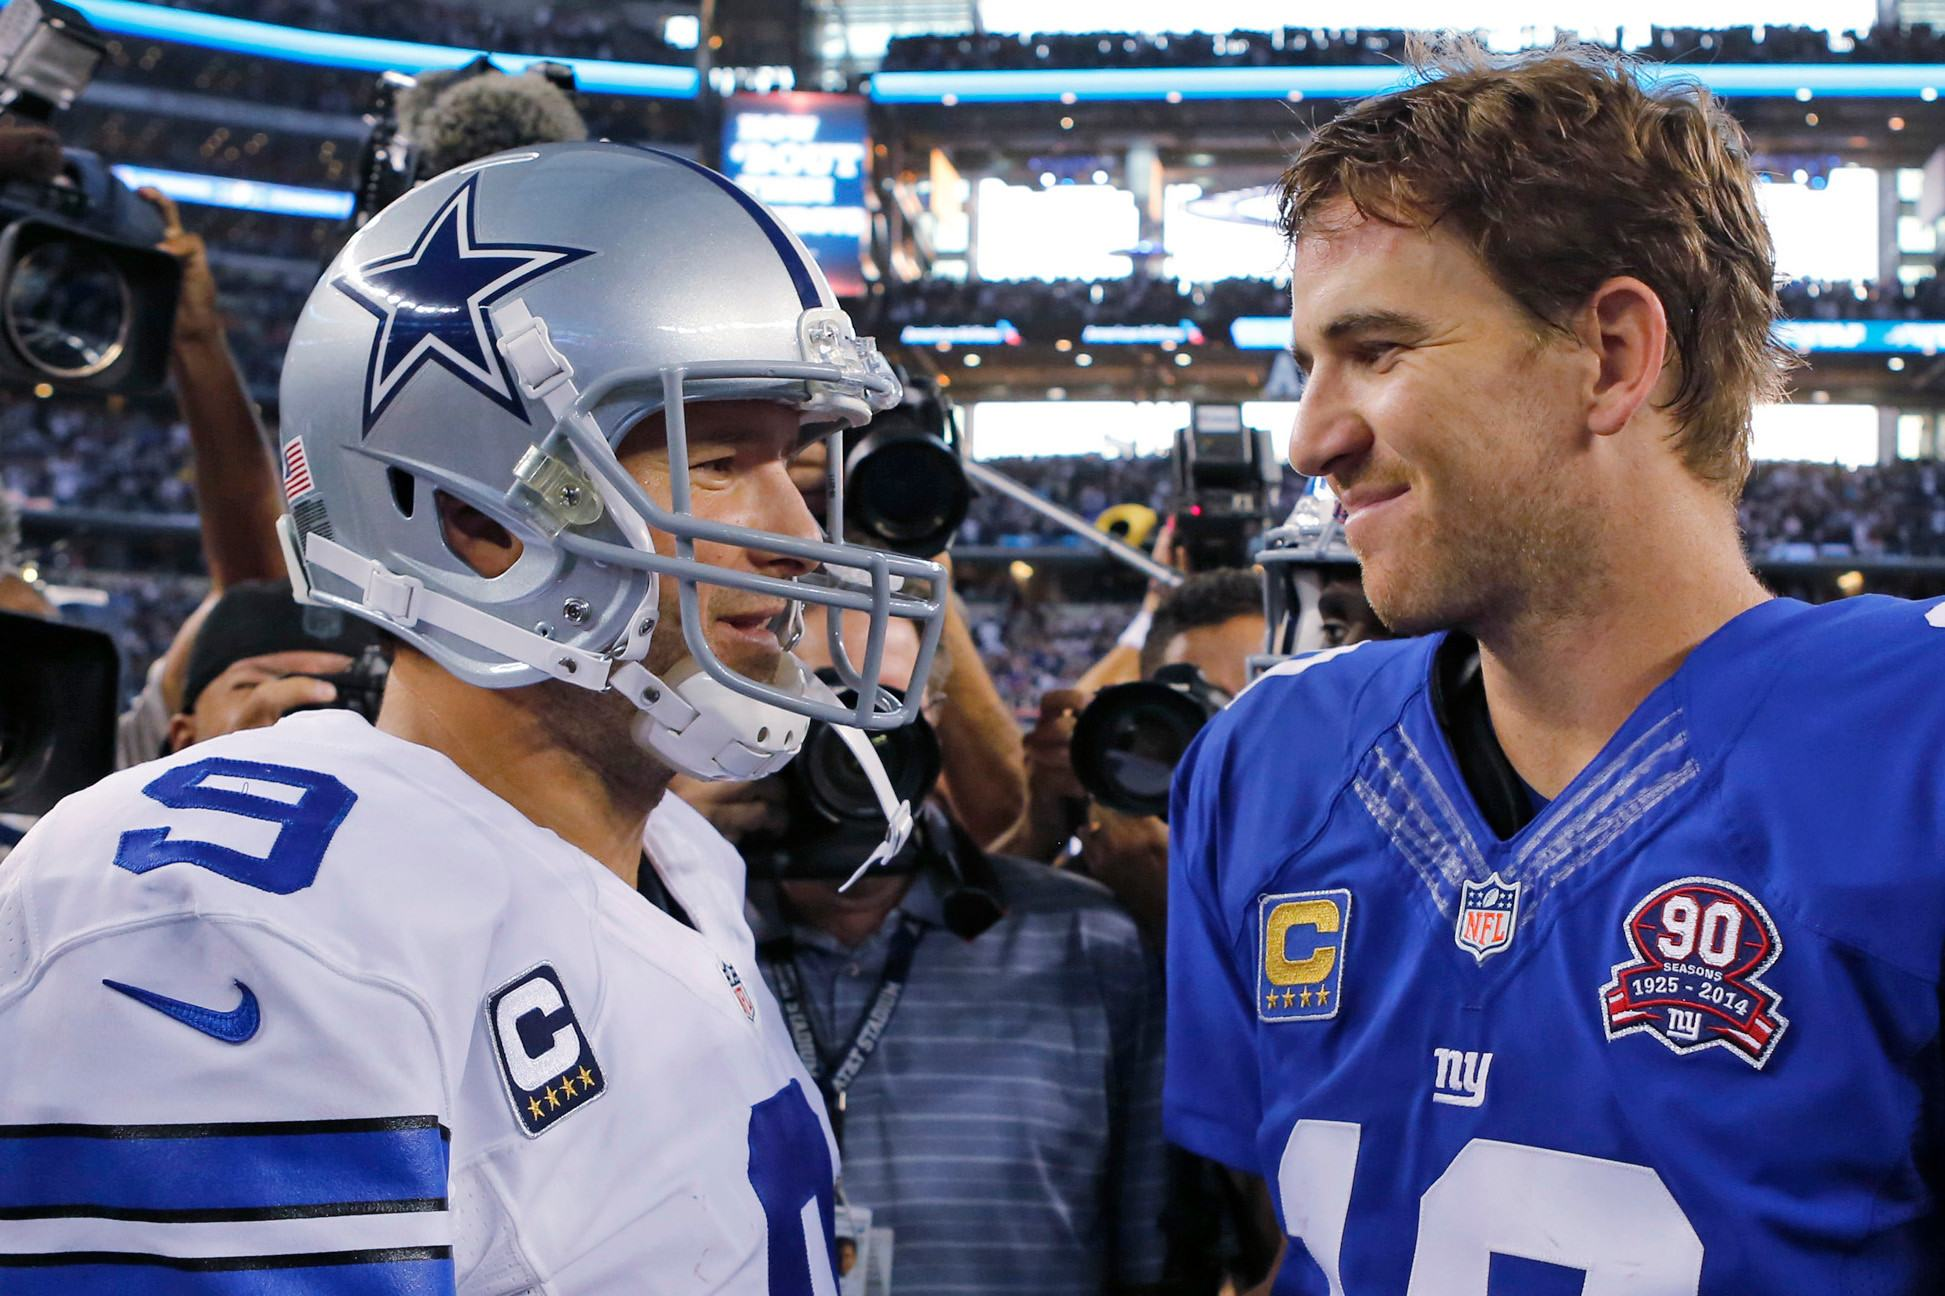 Is This The Last Time The Manning-led Giants Face The Cowboys?